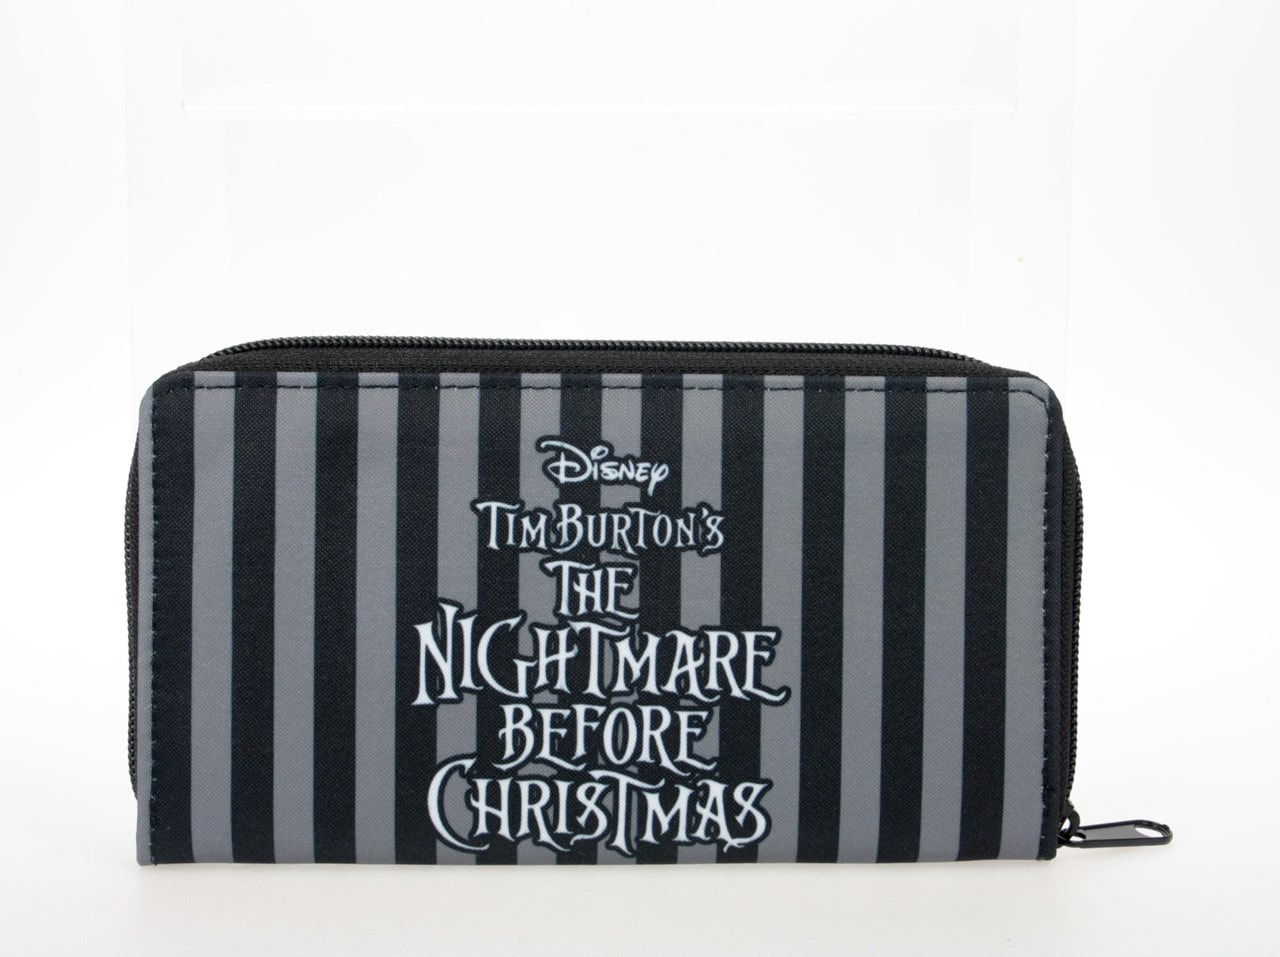 Jack & Sally: The Nightmare Before Christmas Purse - 2